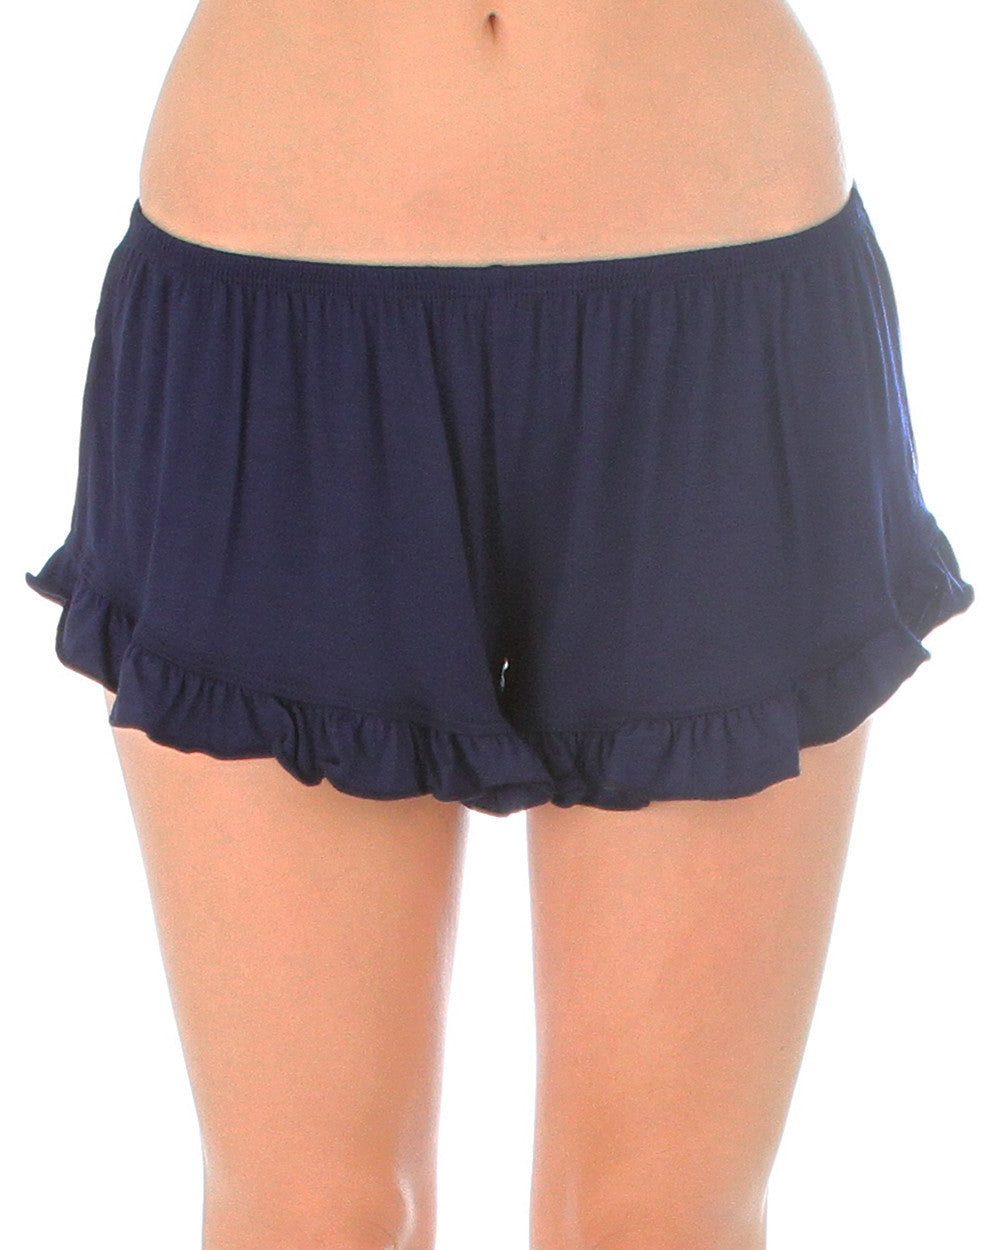 Vodi Shorts With Ruffle Trim In Navy